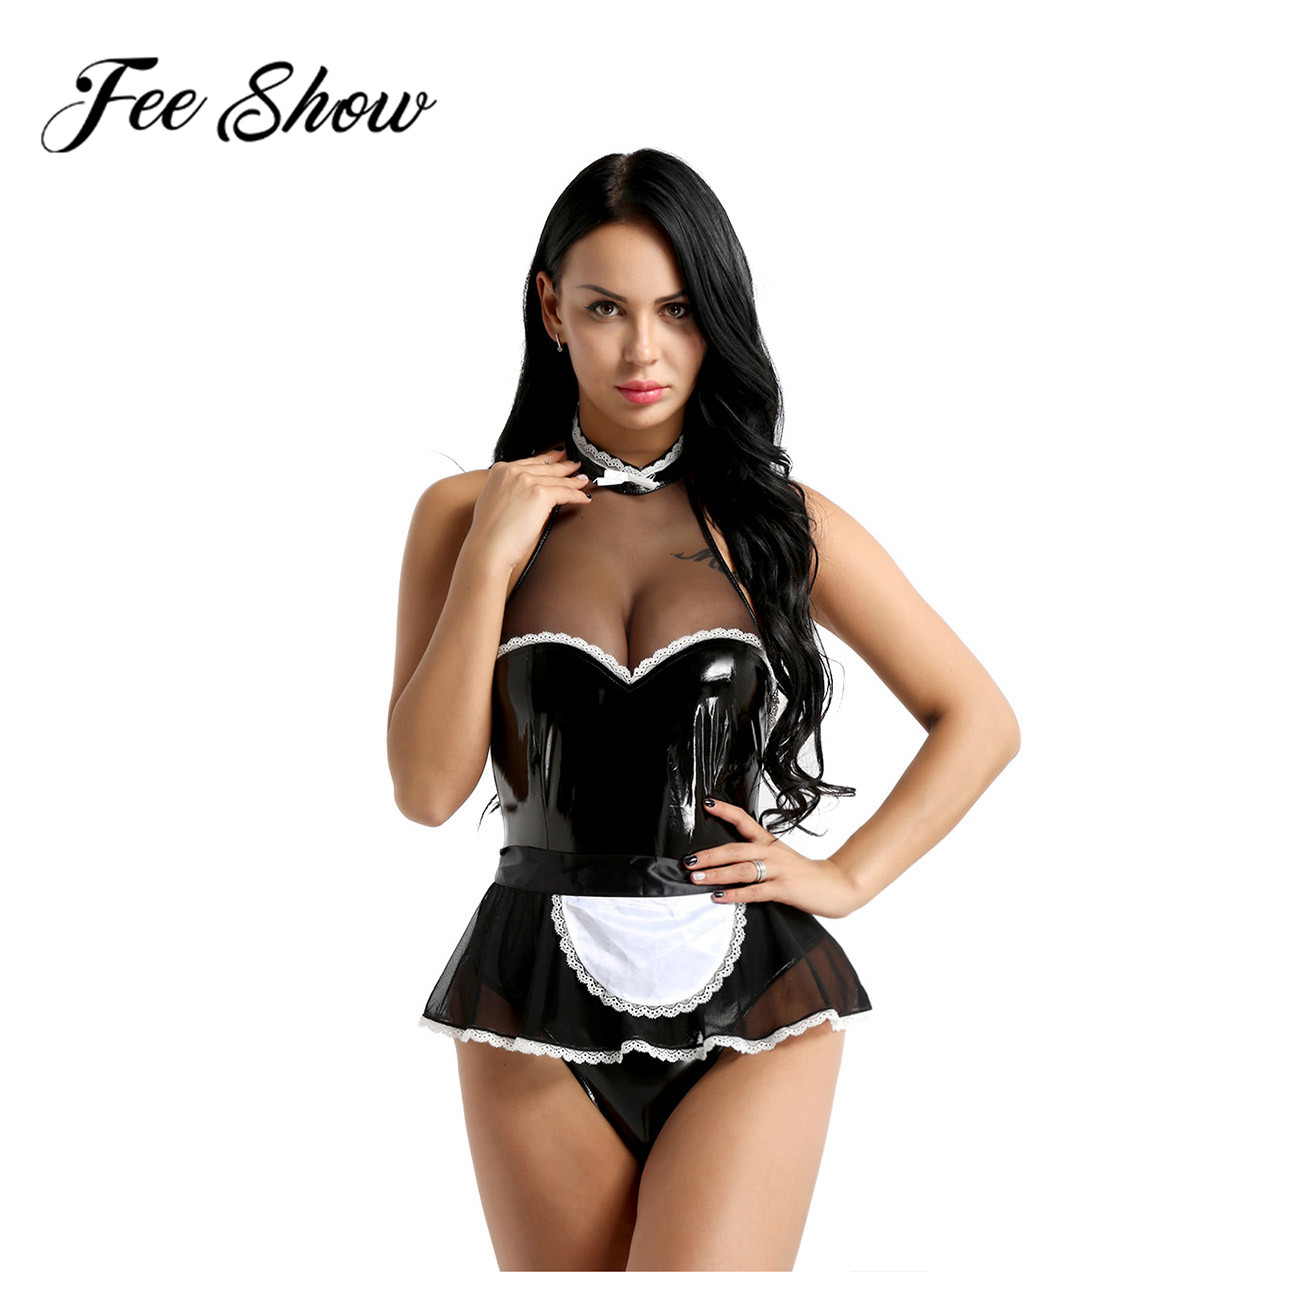 Sexy Adult Women One-piece Reflective Bodysuit Patent Leather Maid Cosplay Costume Halter Jumpsuit with Apron Maidservant Outfit